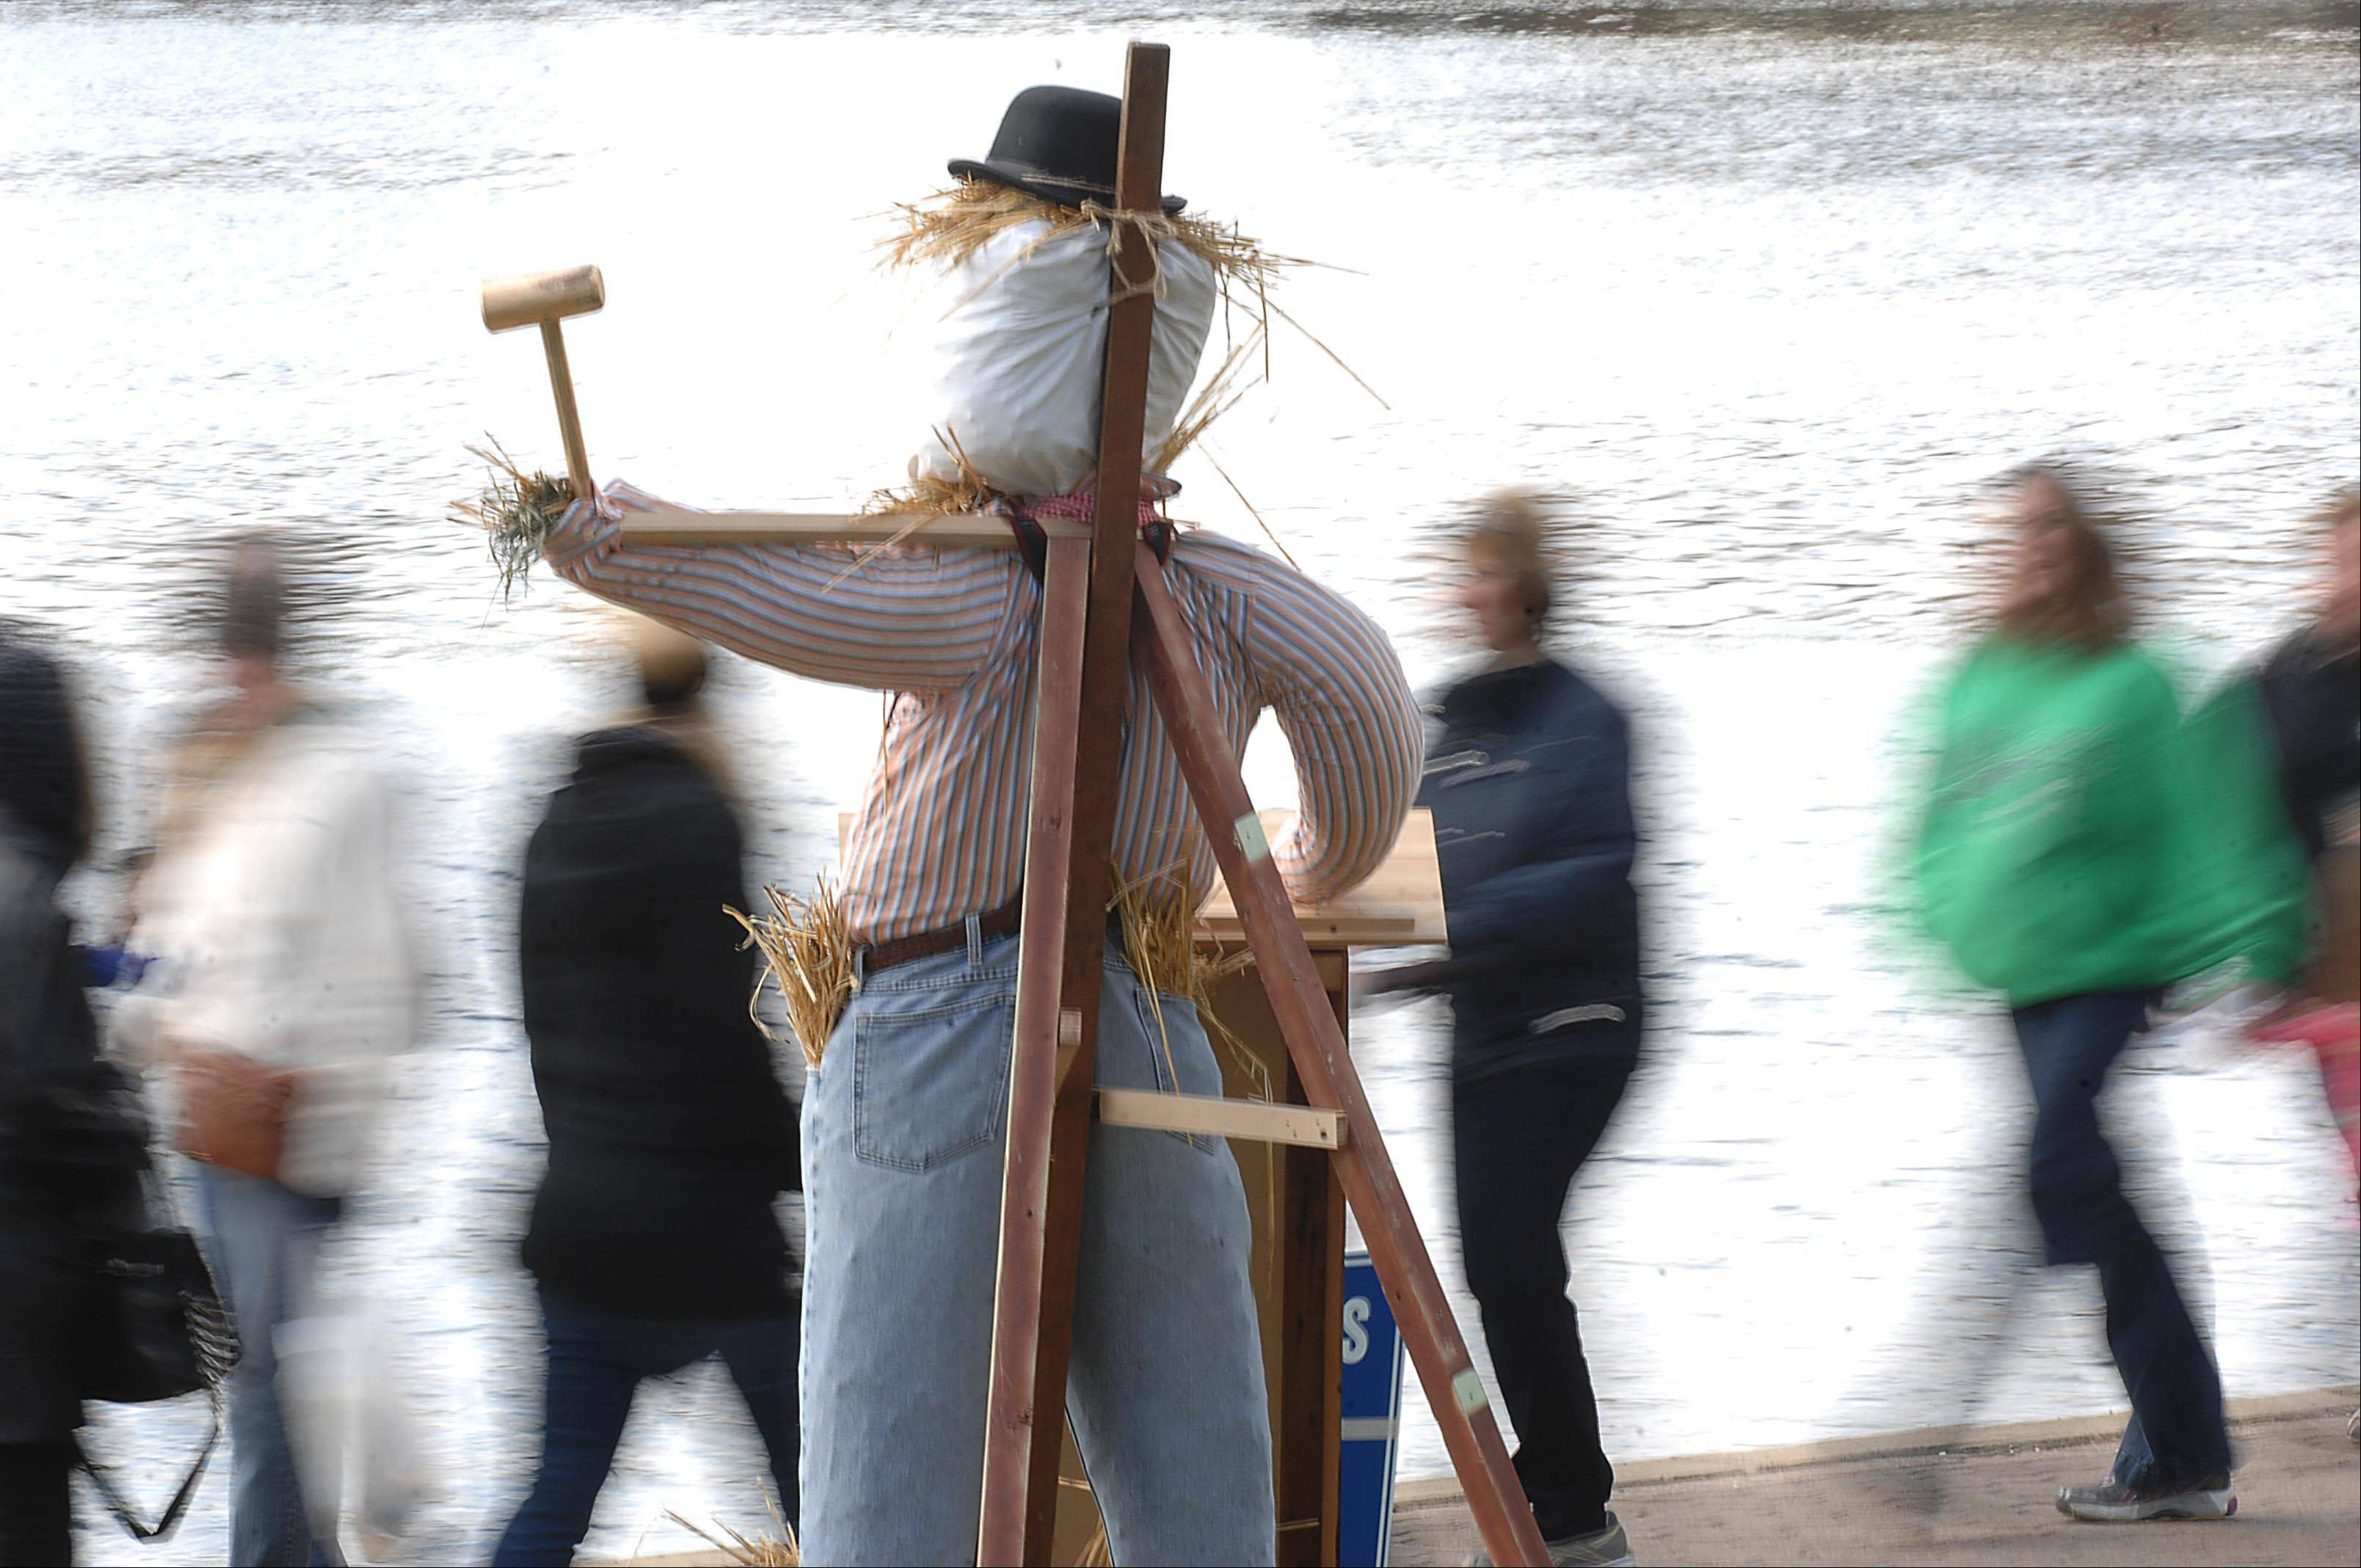 People walk past one of the competition scarecrows on display on the Riverwalk Sunday during the Scarecrow Festival in St. Charles.